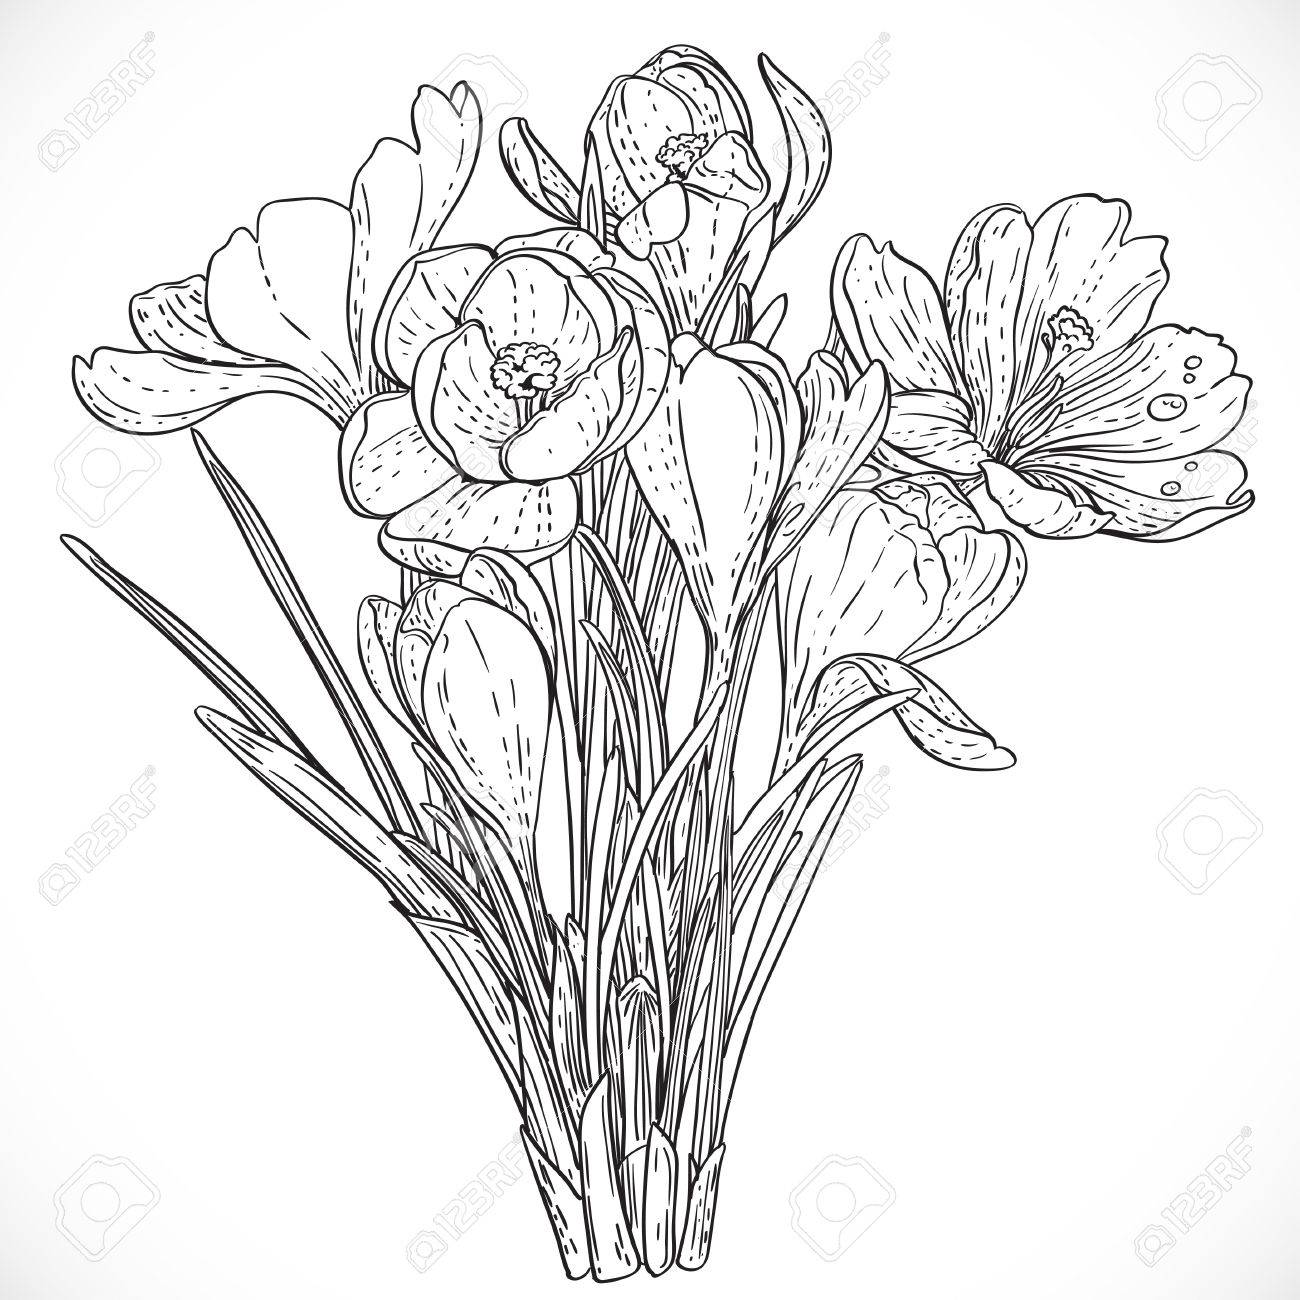 Crocus flower drawing at getdrawings free for personal use 1300x1300 3961 crocus stock illustrations cliparts and royalty free crocus mightylinksfo